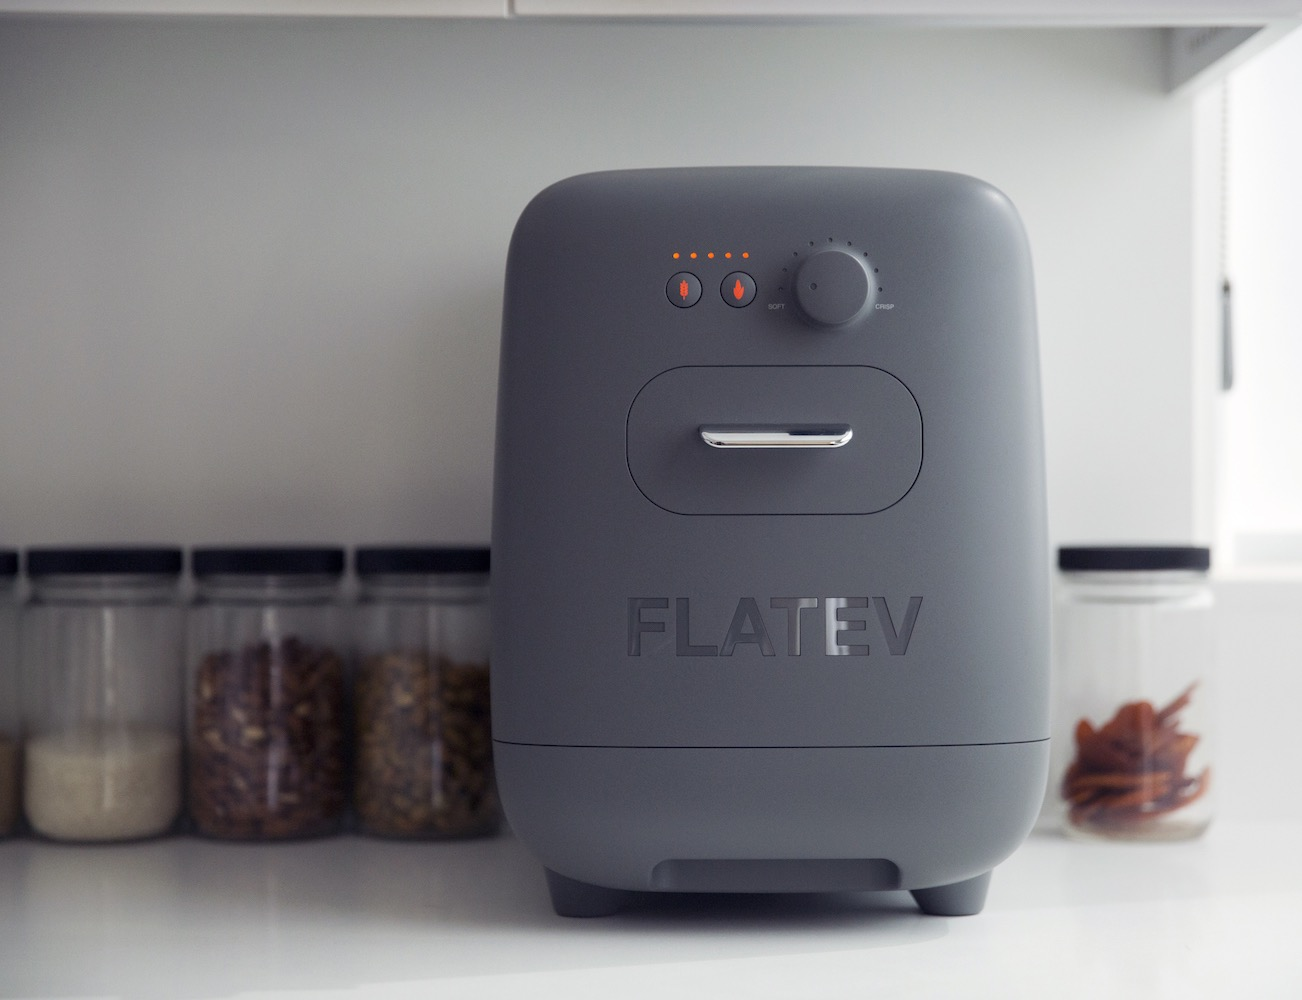 flatev – The Artisan Tortilla Maker